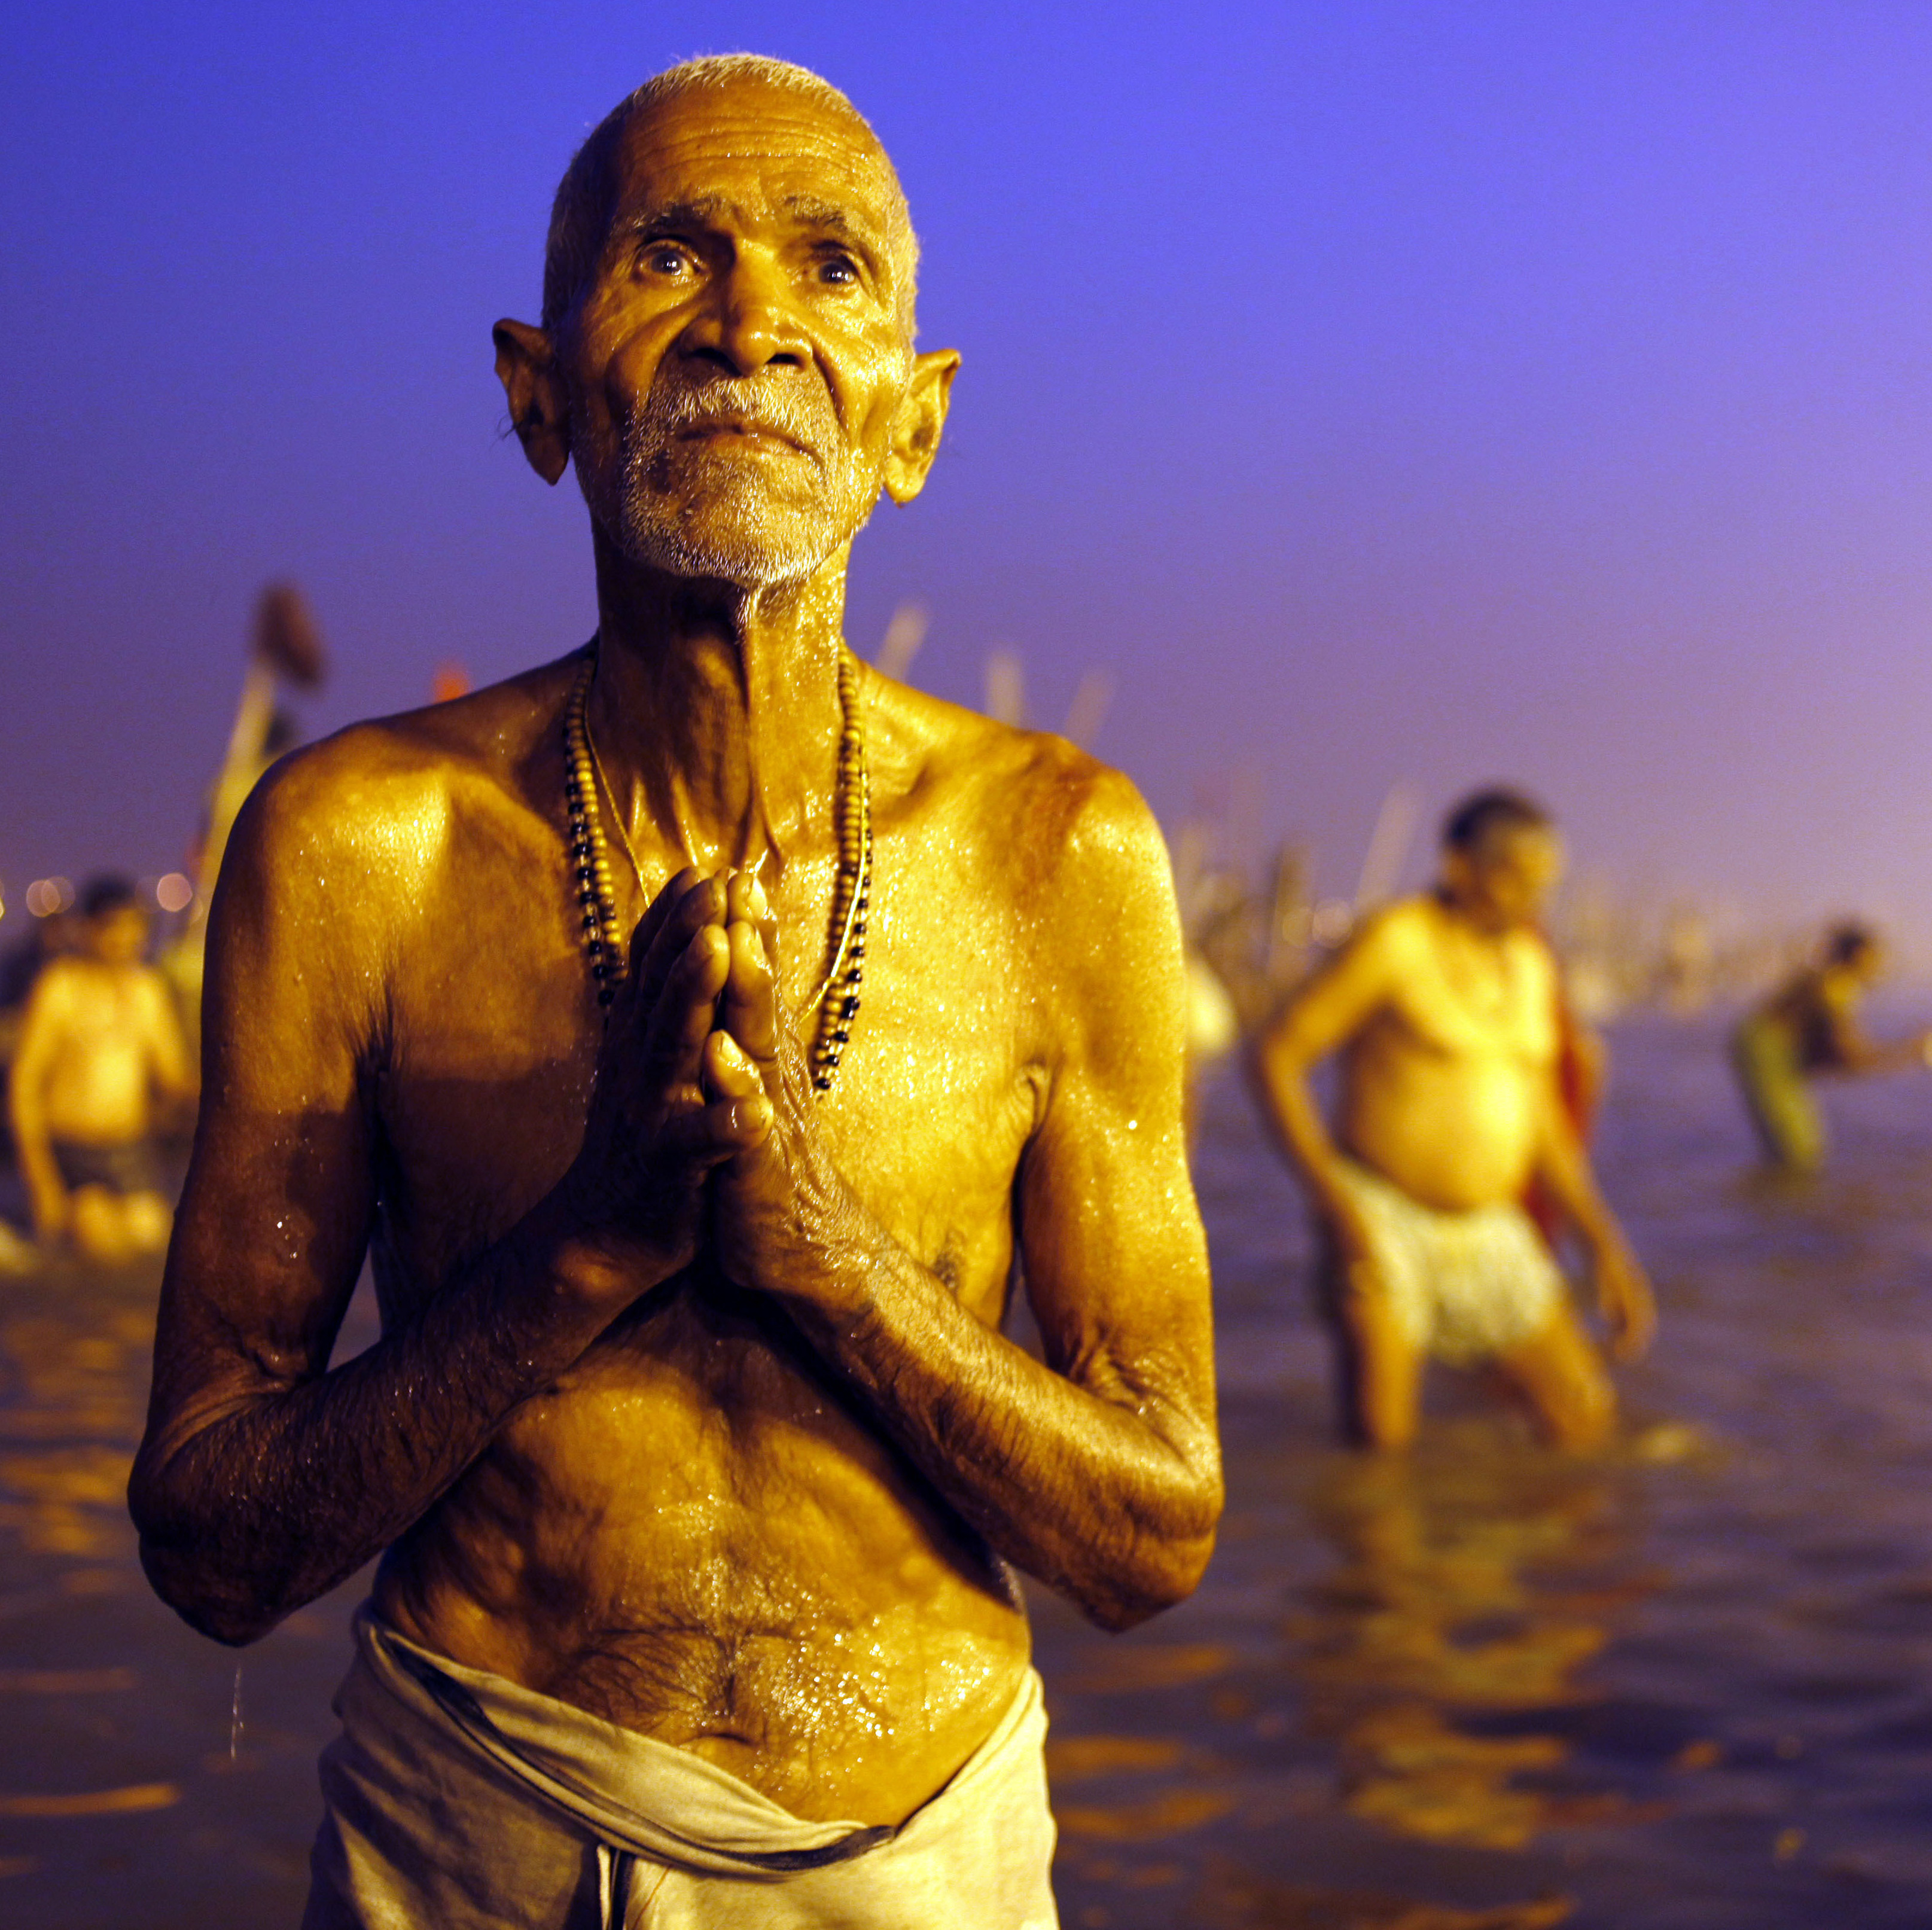 A Hindu devotee prays after a holy dip at the Sangam, the confluence of three holy rivers -- the Ganges, the Yamuna and the mythical Saraswati --� during the Kumbh Mela festival in Allahabad, India, on Sunday.